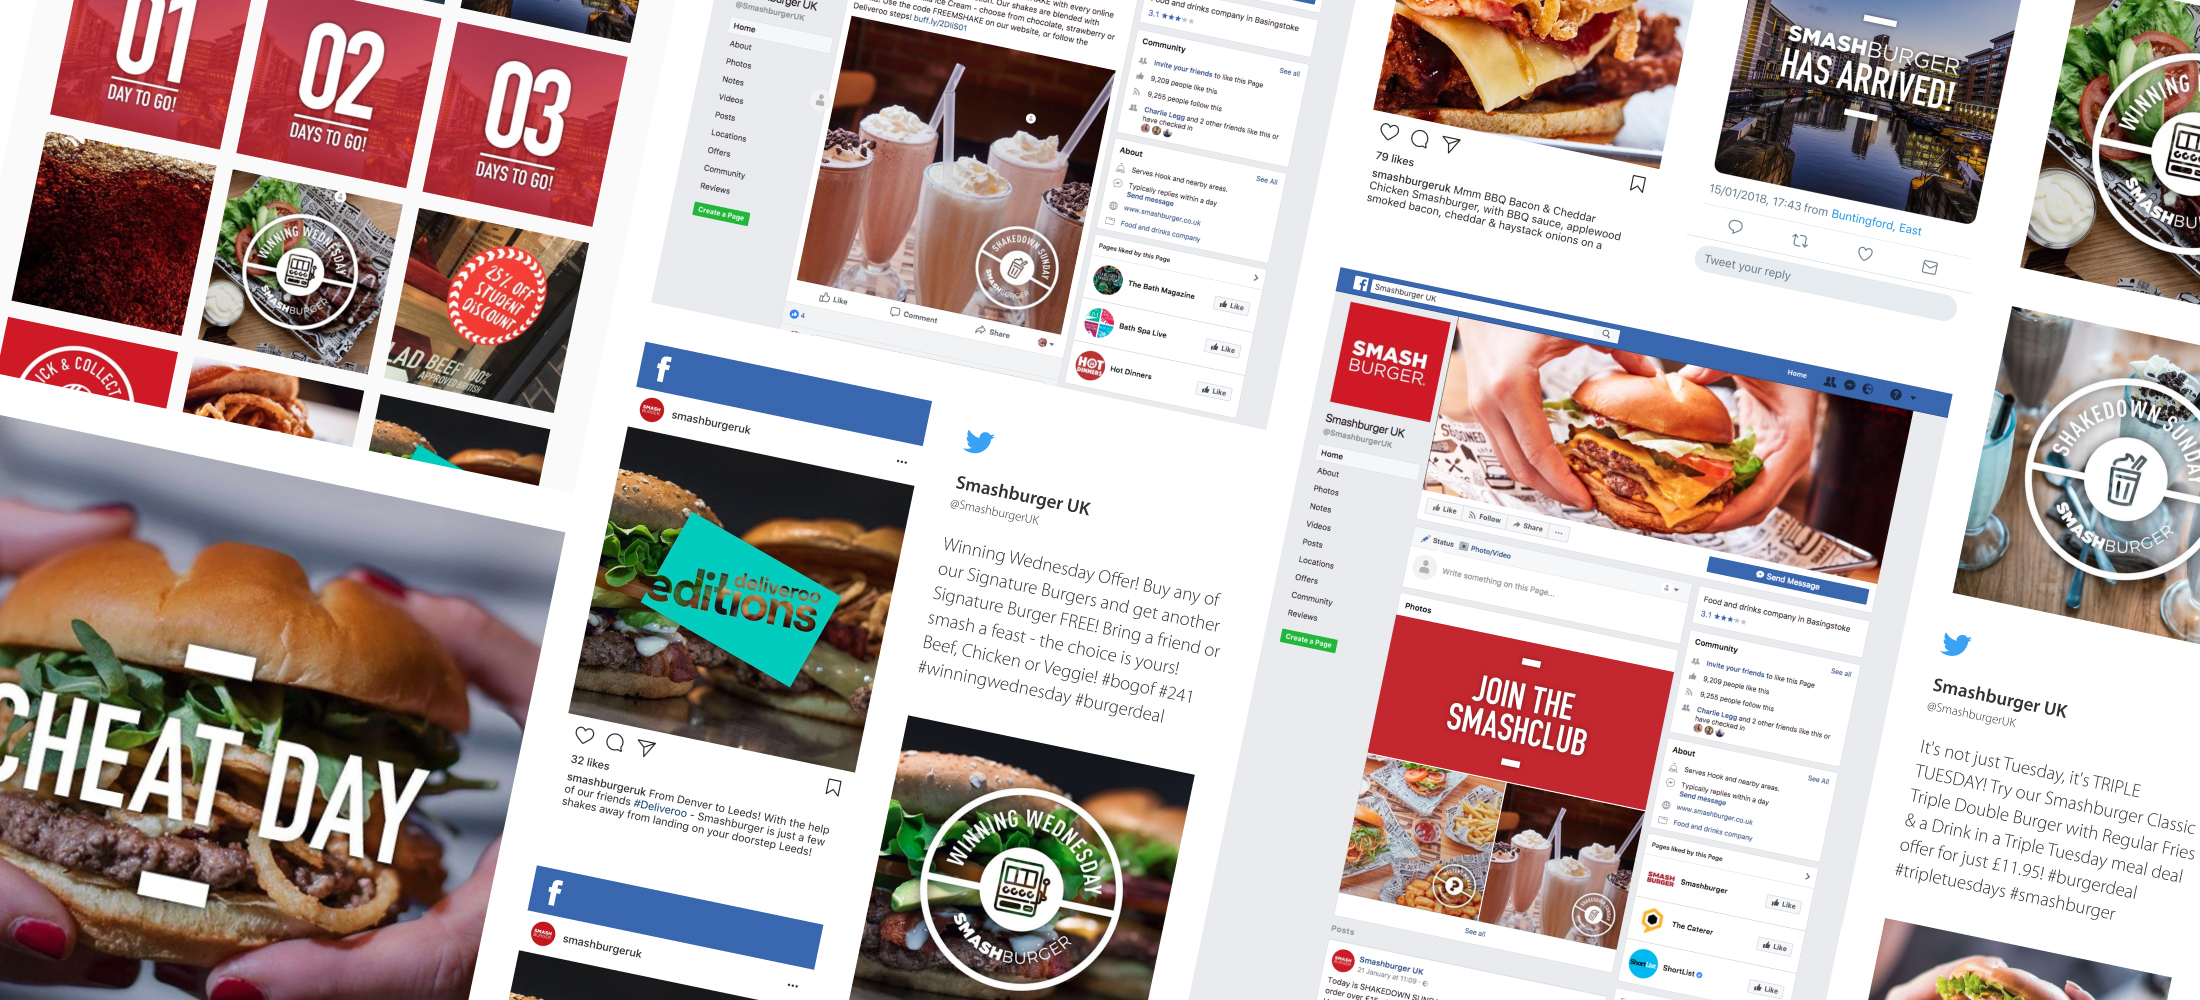 Smashbox social media pages with images of burgers, milkshakes combined with graphics